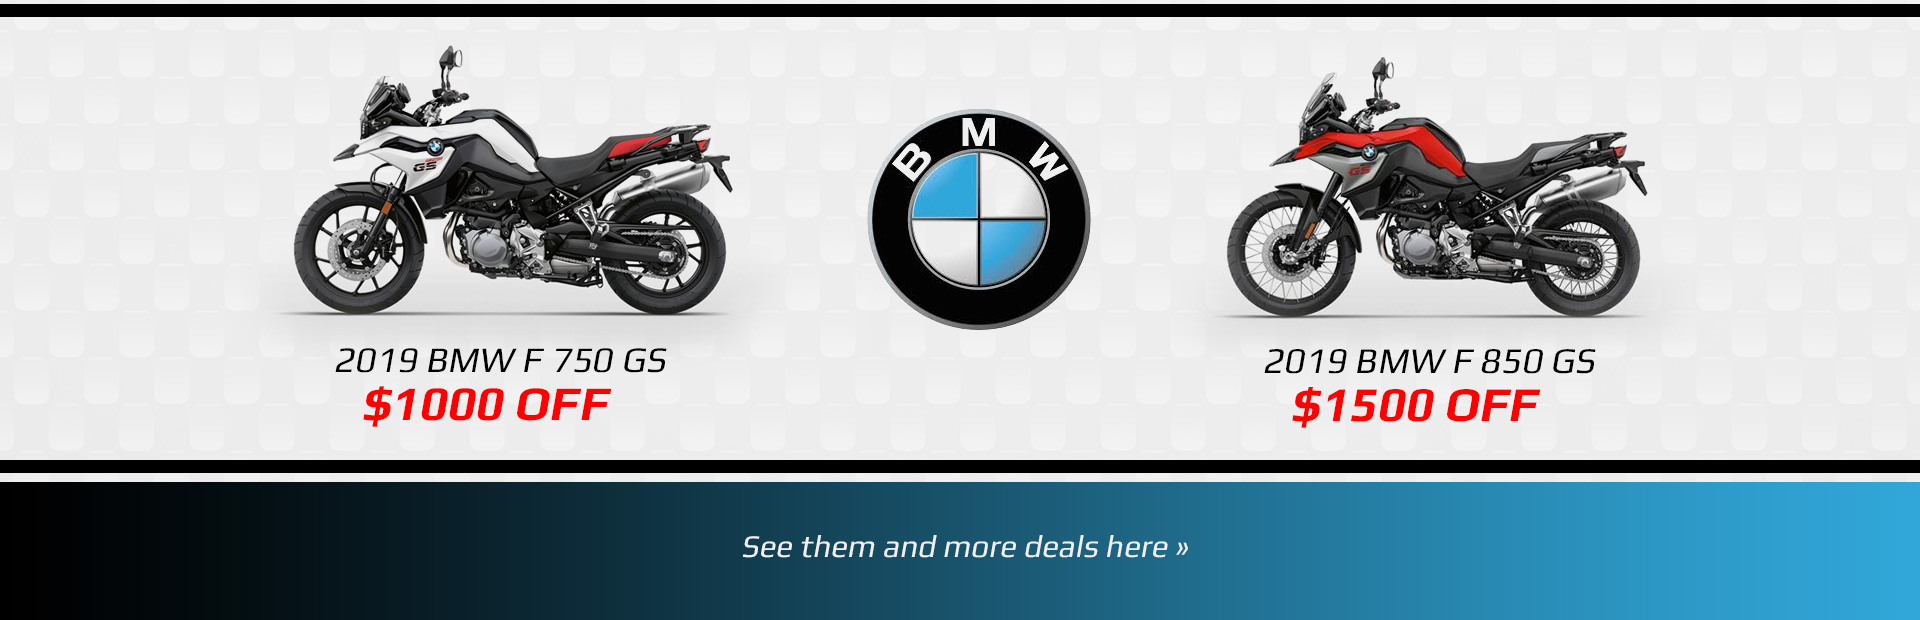 Get $1000 off on the 2019 BMW F 750 GS and $1500 off on the 2019 BMW F 850 GS. Click here to find ou